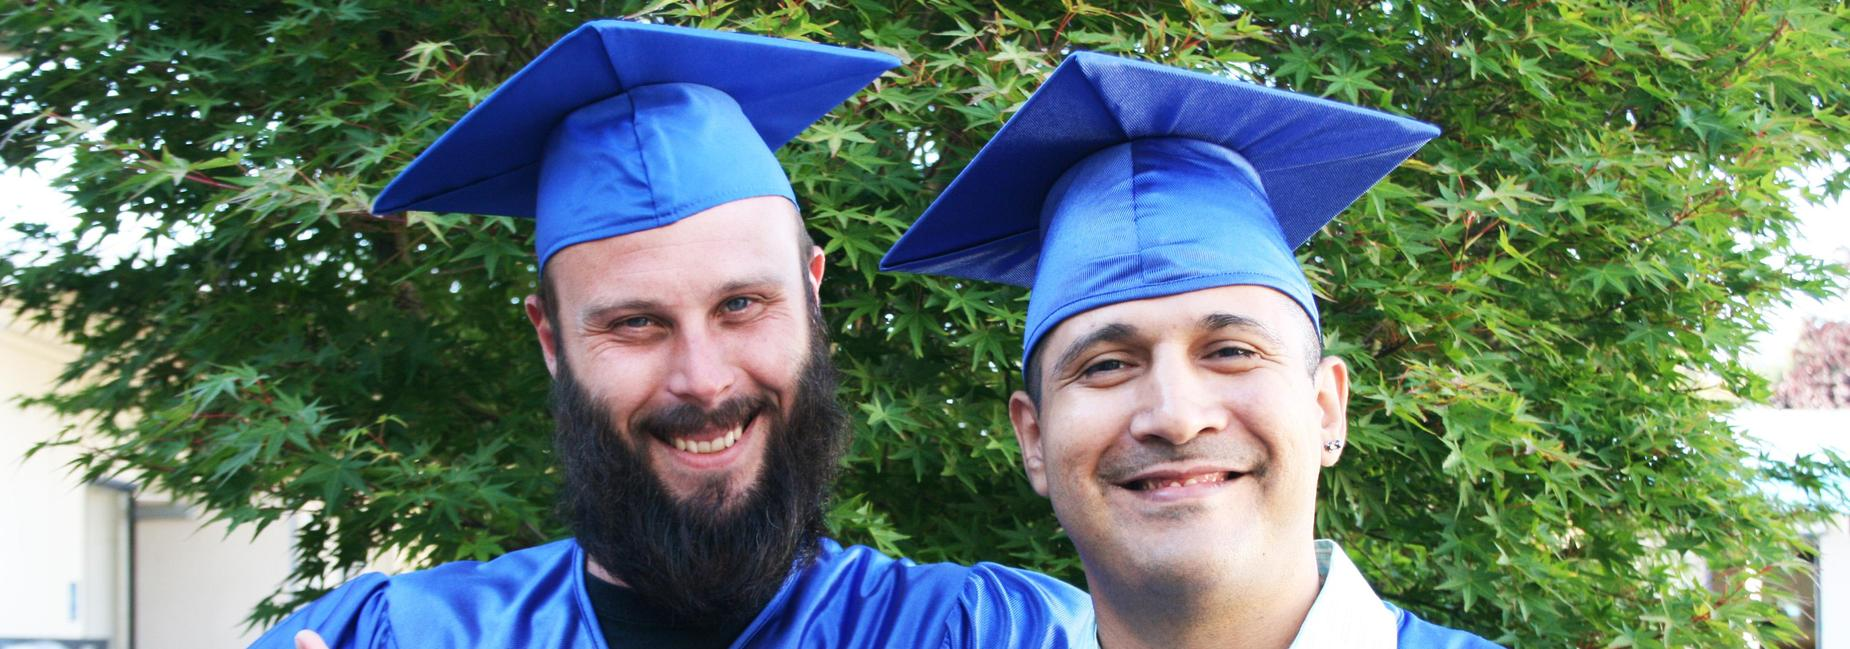 Two diploma graduates in cap and gown smiling at graduation.